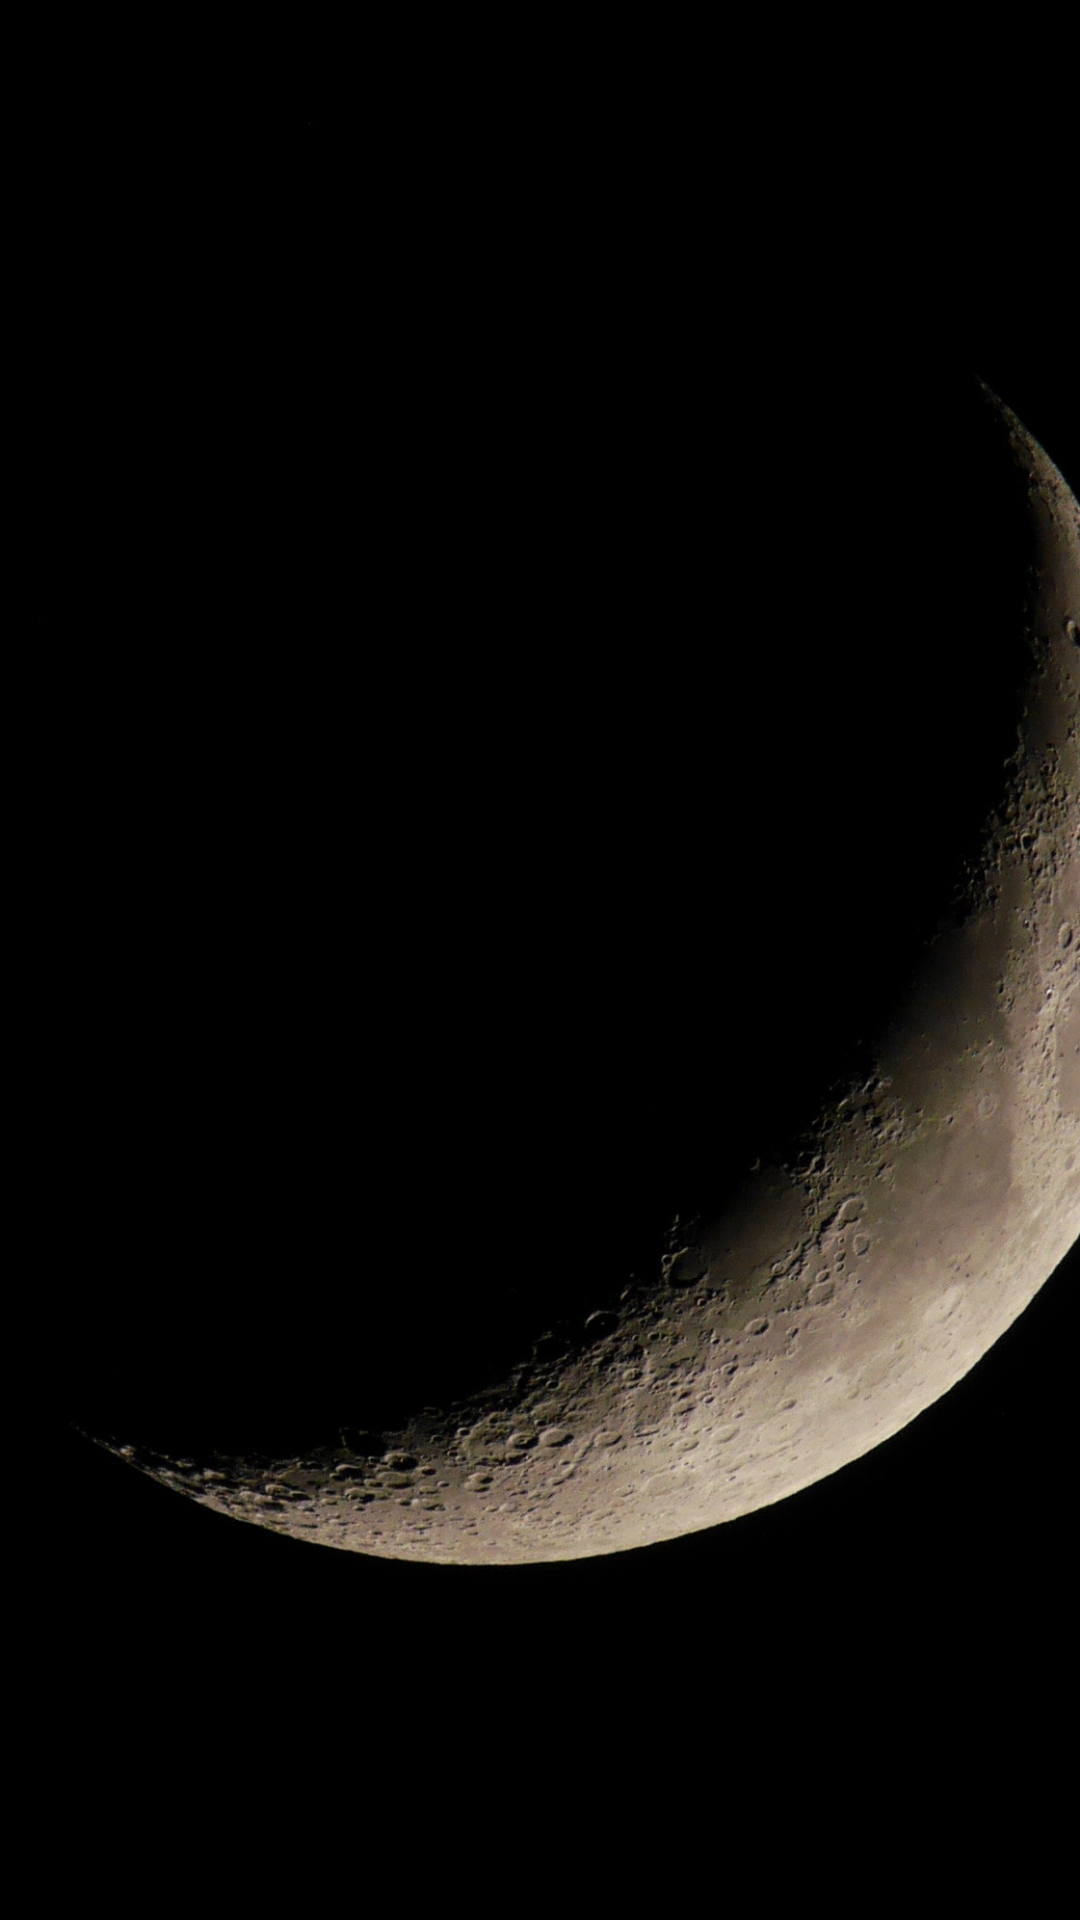 Moon, Space, Black iPhone Wallpaper